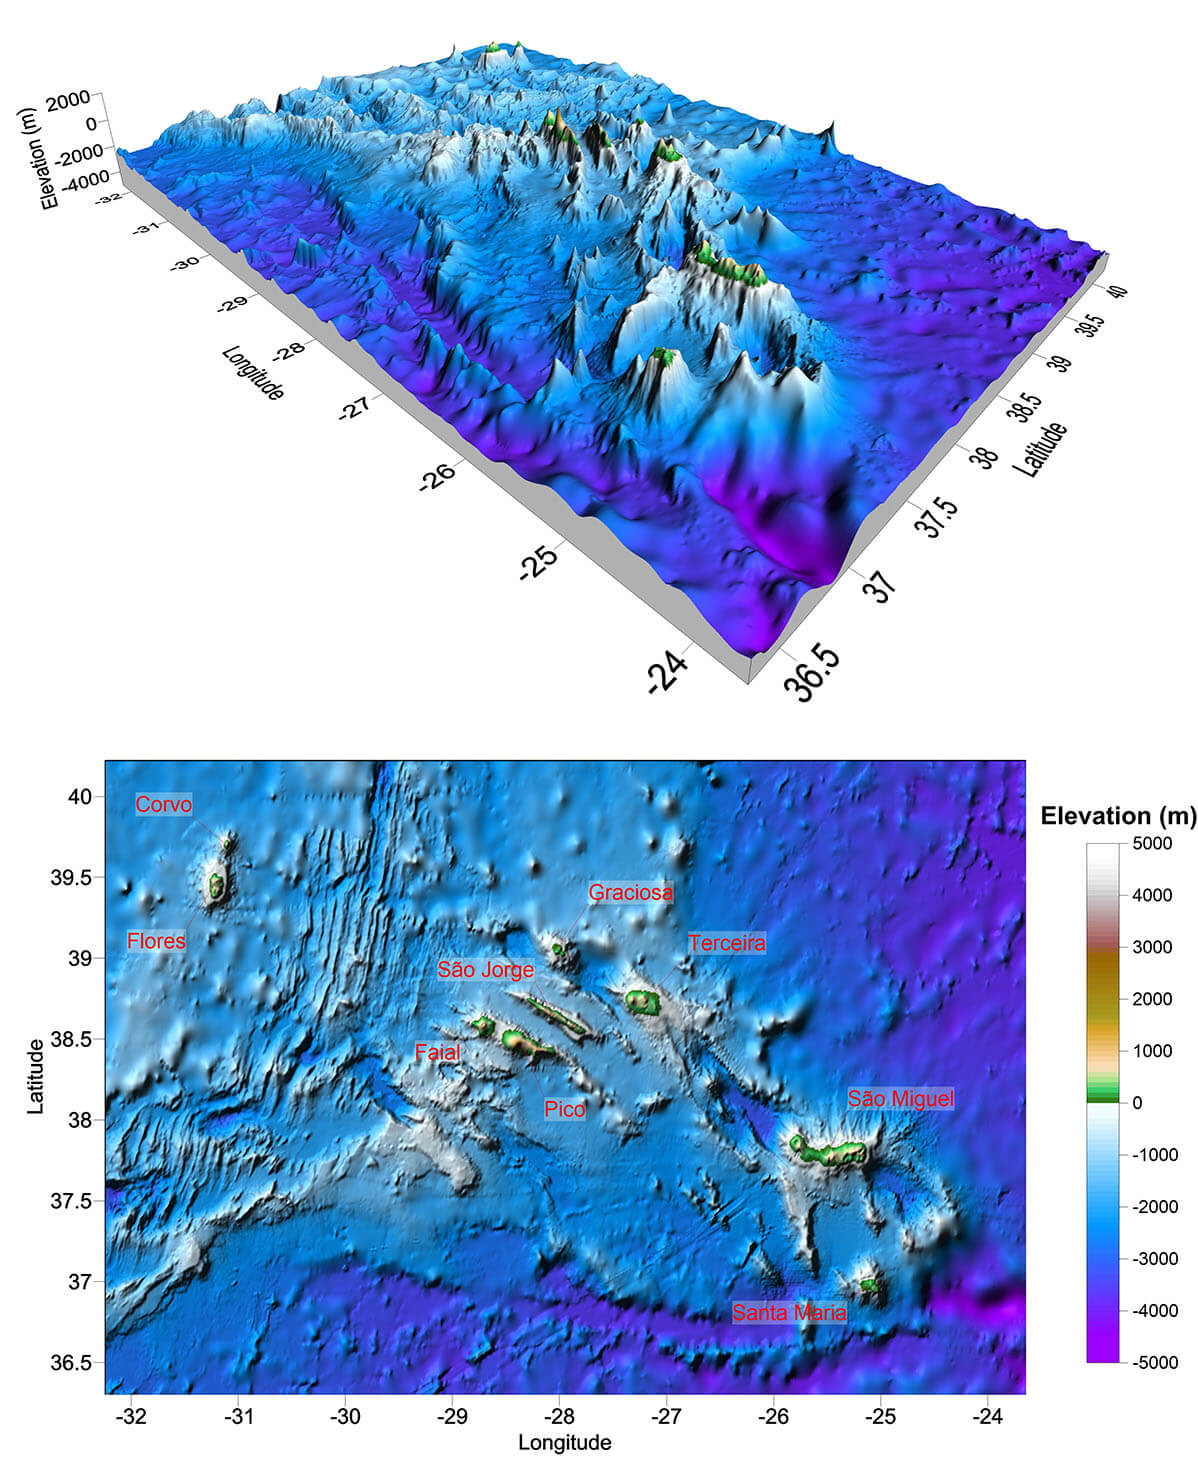 Multibeam Bathymetry of the Azores Region